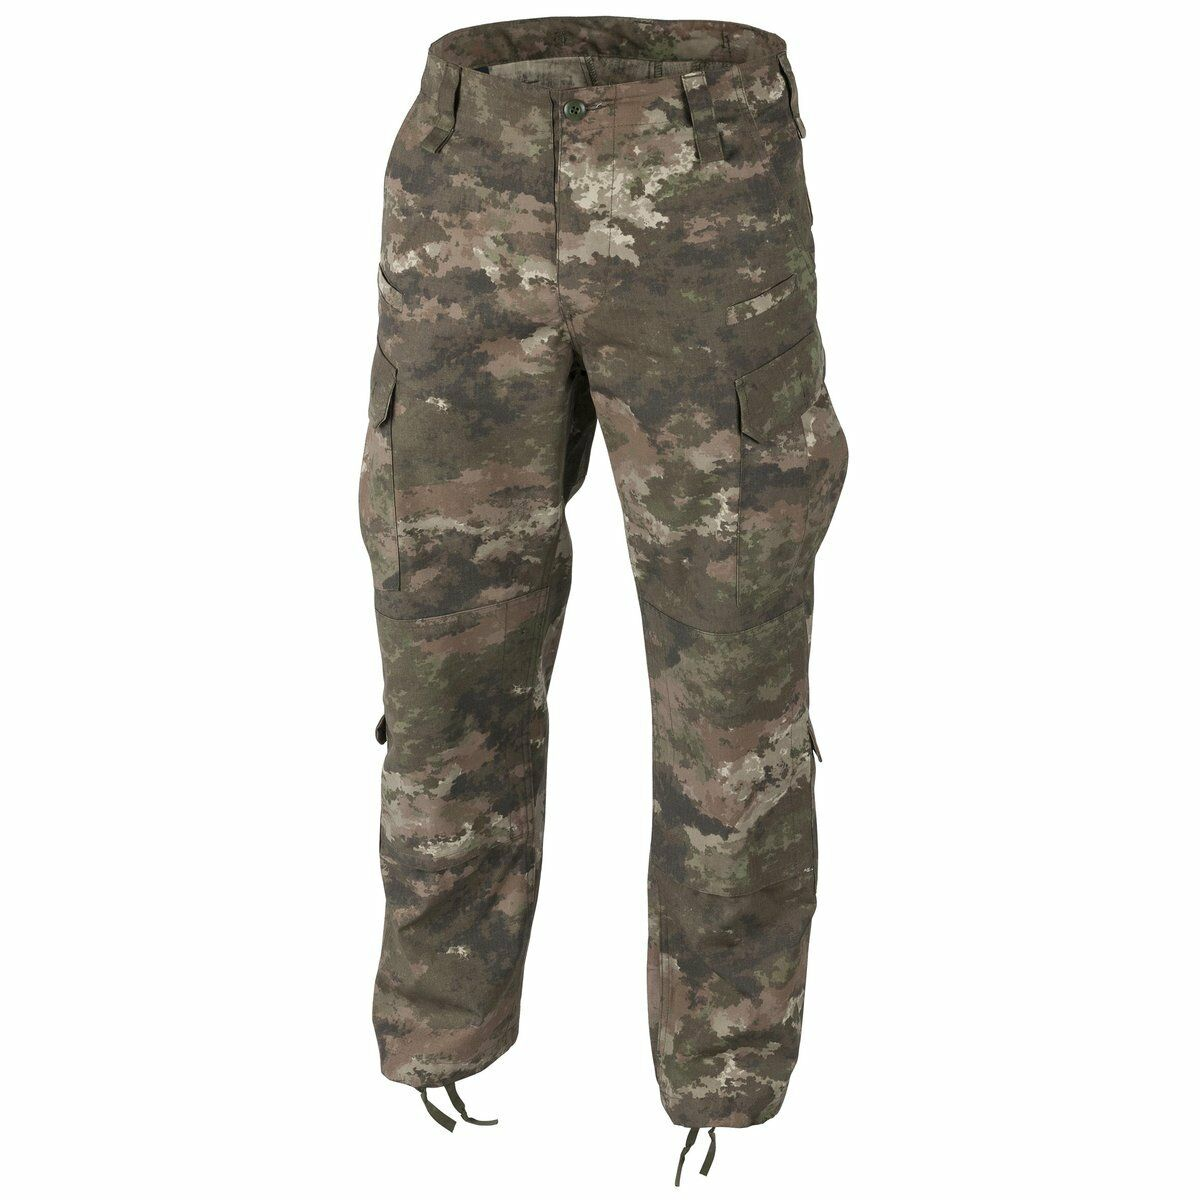 HELIKON TEX C P U Outdoor Combat Feldhose Hose Legion Forest LR Large Regular  | Qualitätsprodukte